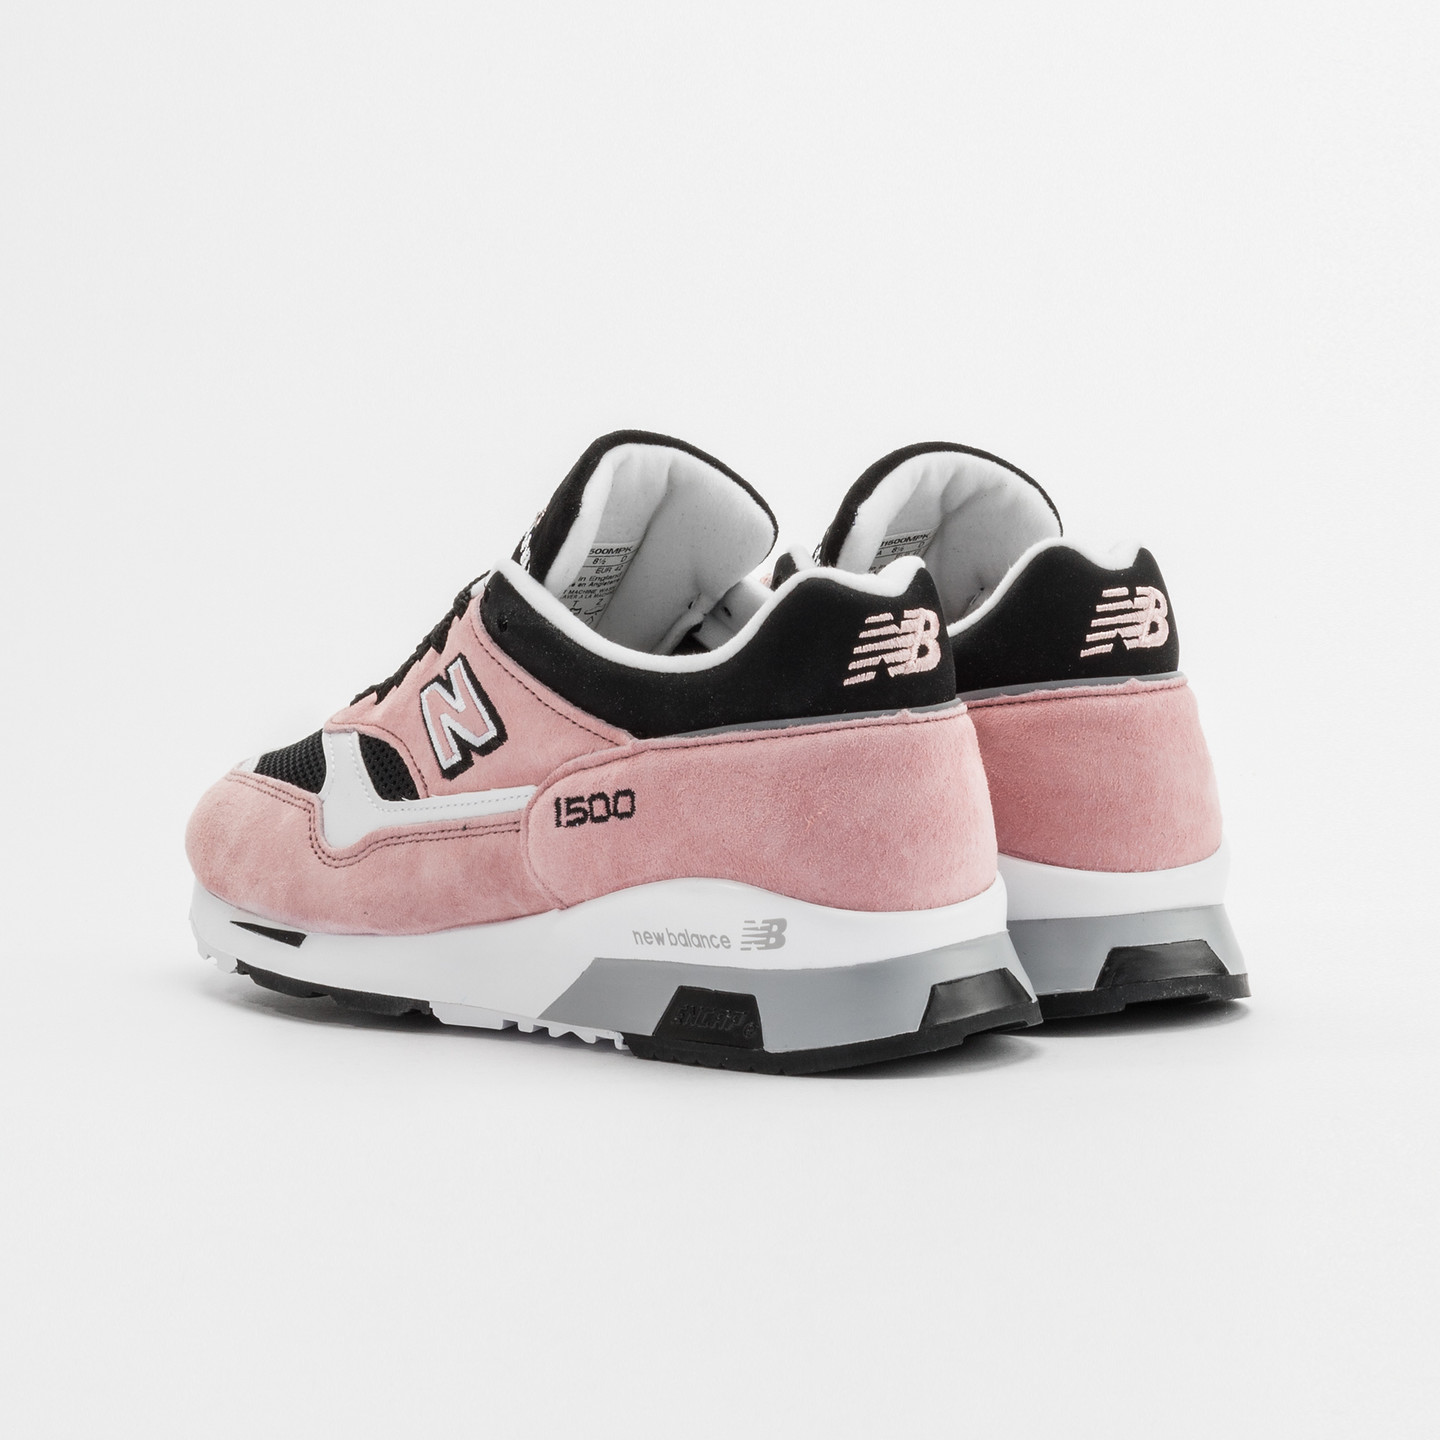 New Balance M1500 MPK - Made in England Pink / Black / White M1500MPK-45.5